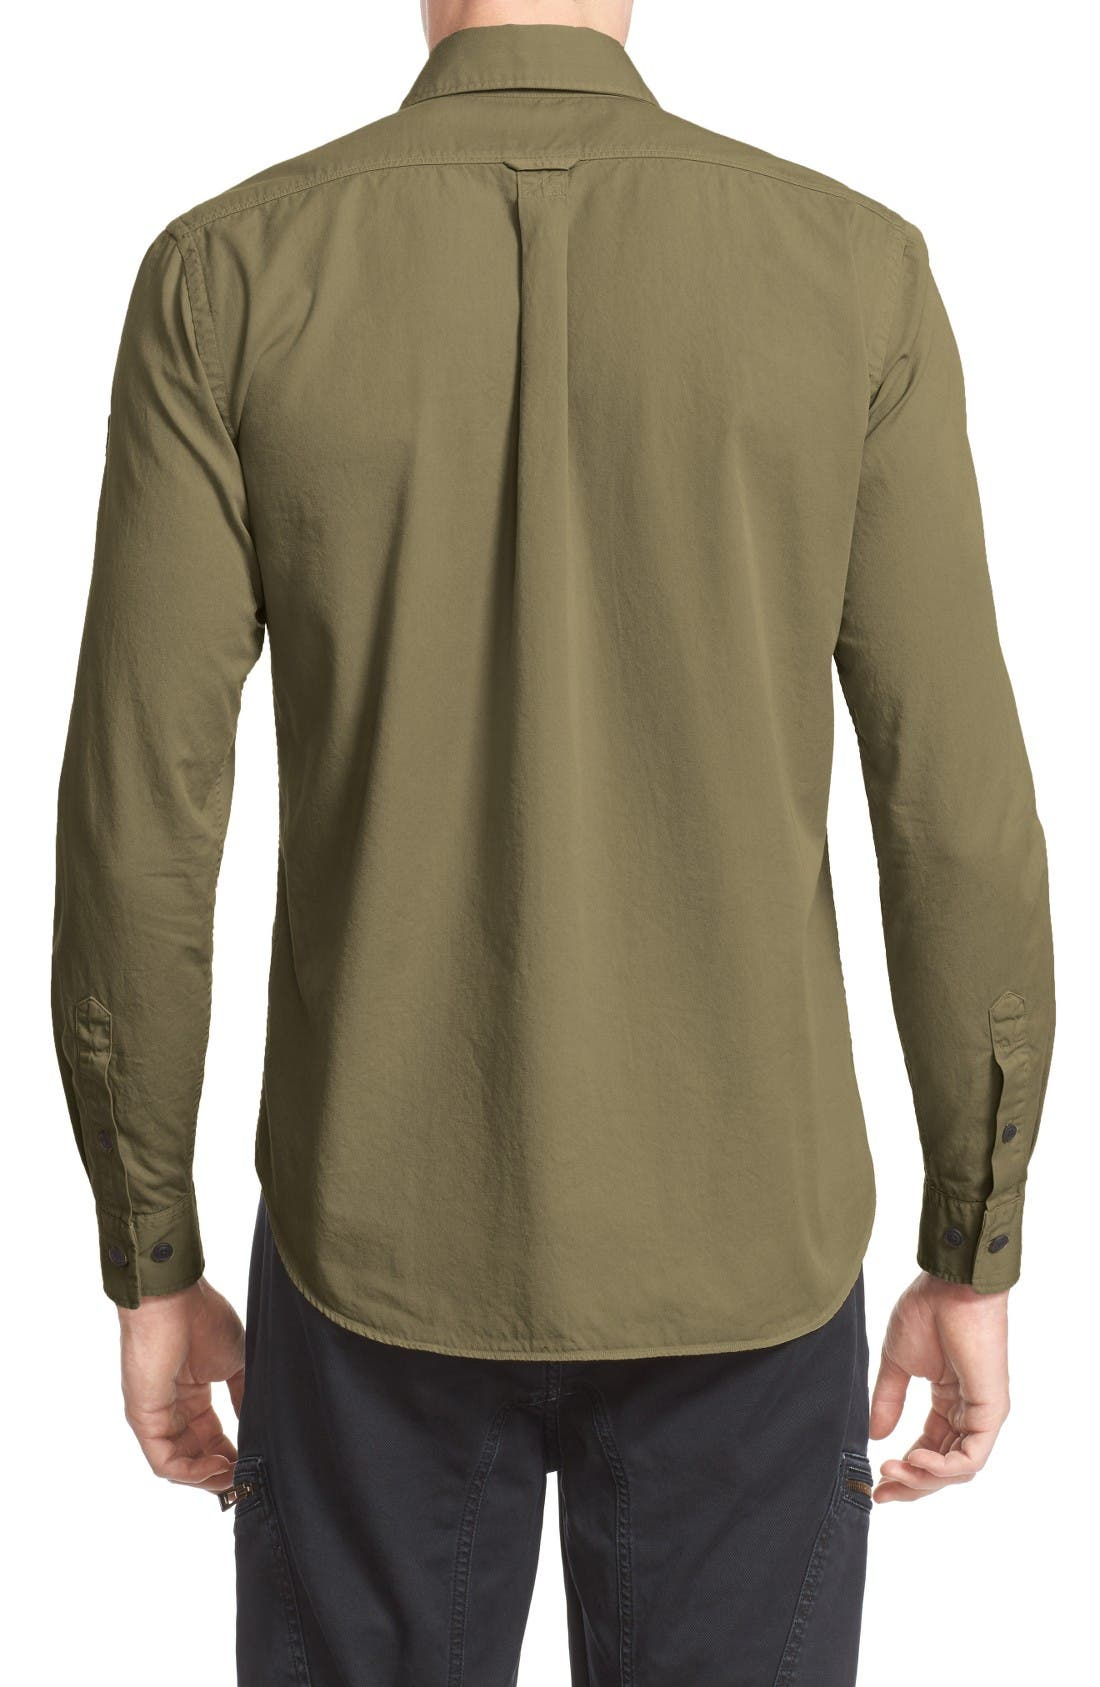 Steadway Woven Shirt,                             Alternate thumbnail 2, color,                             Military Green